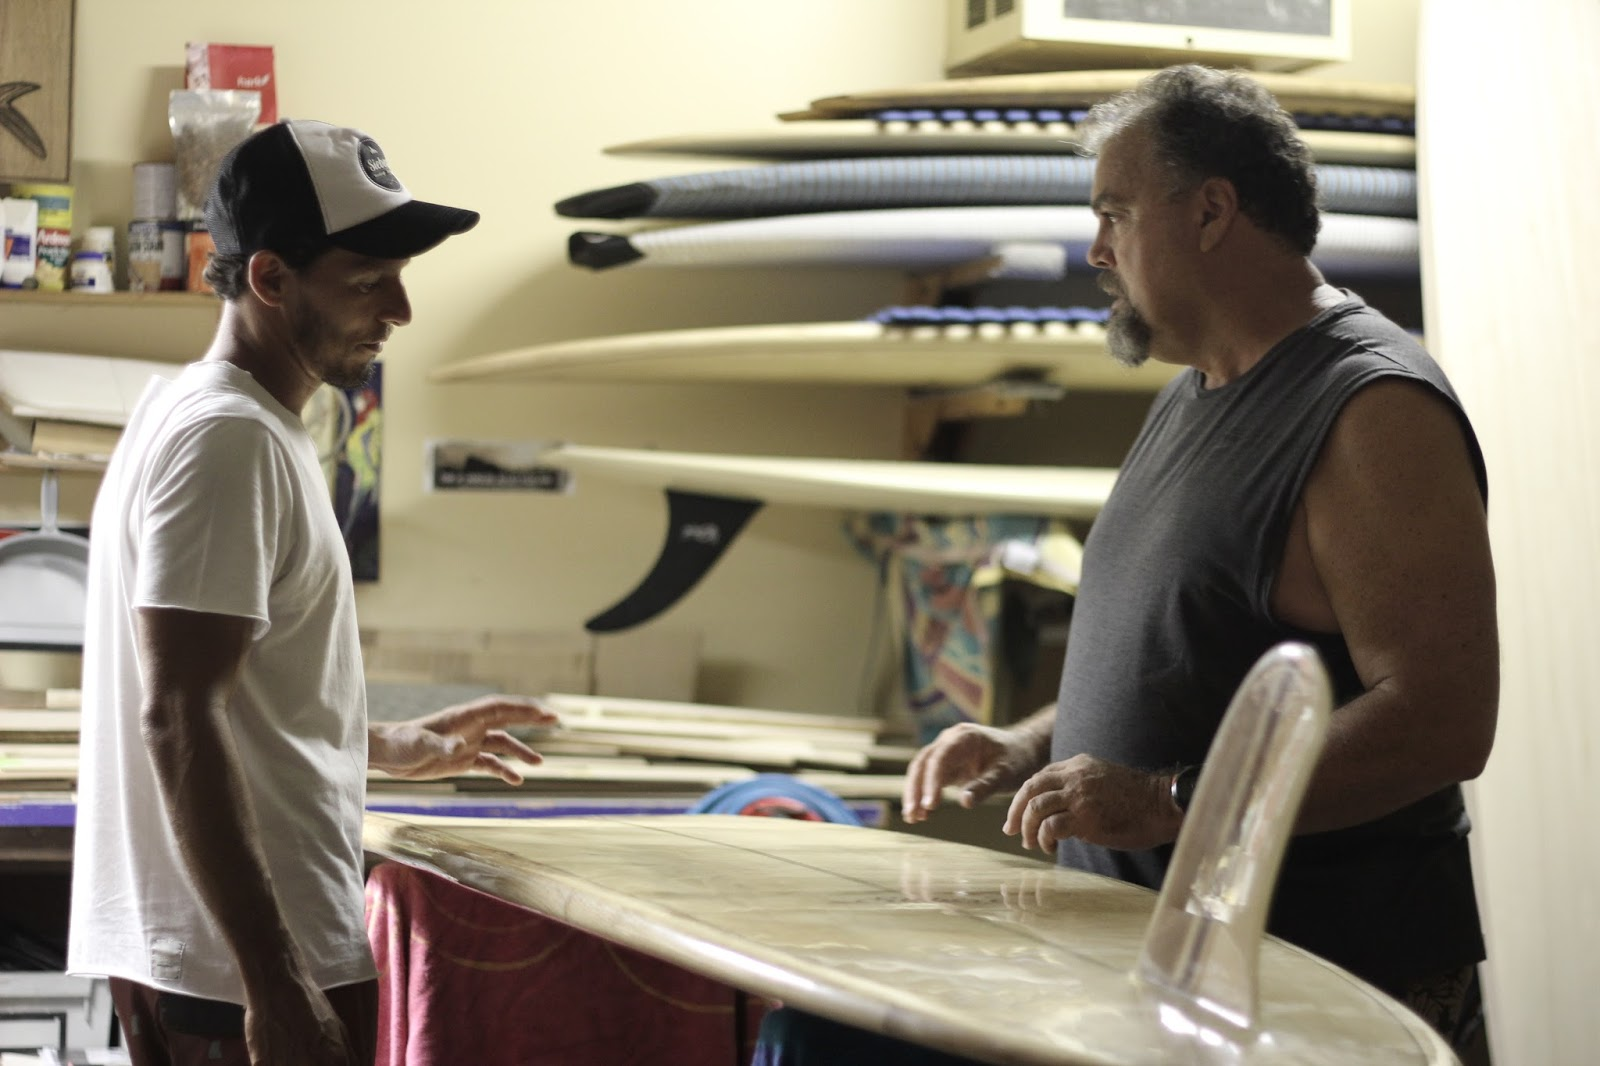 20-03-2016-australia-siebert-surfboards-09